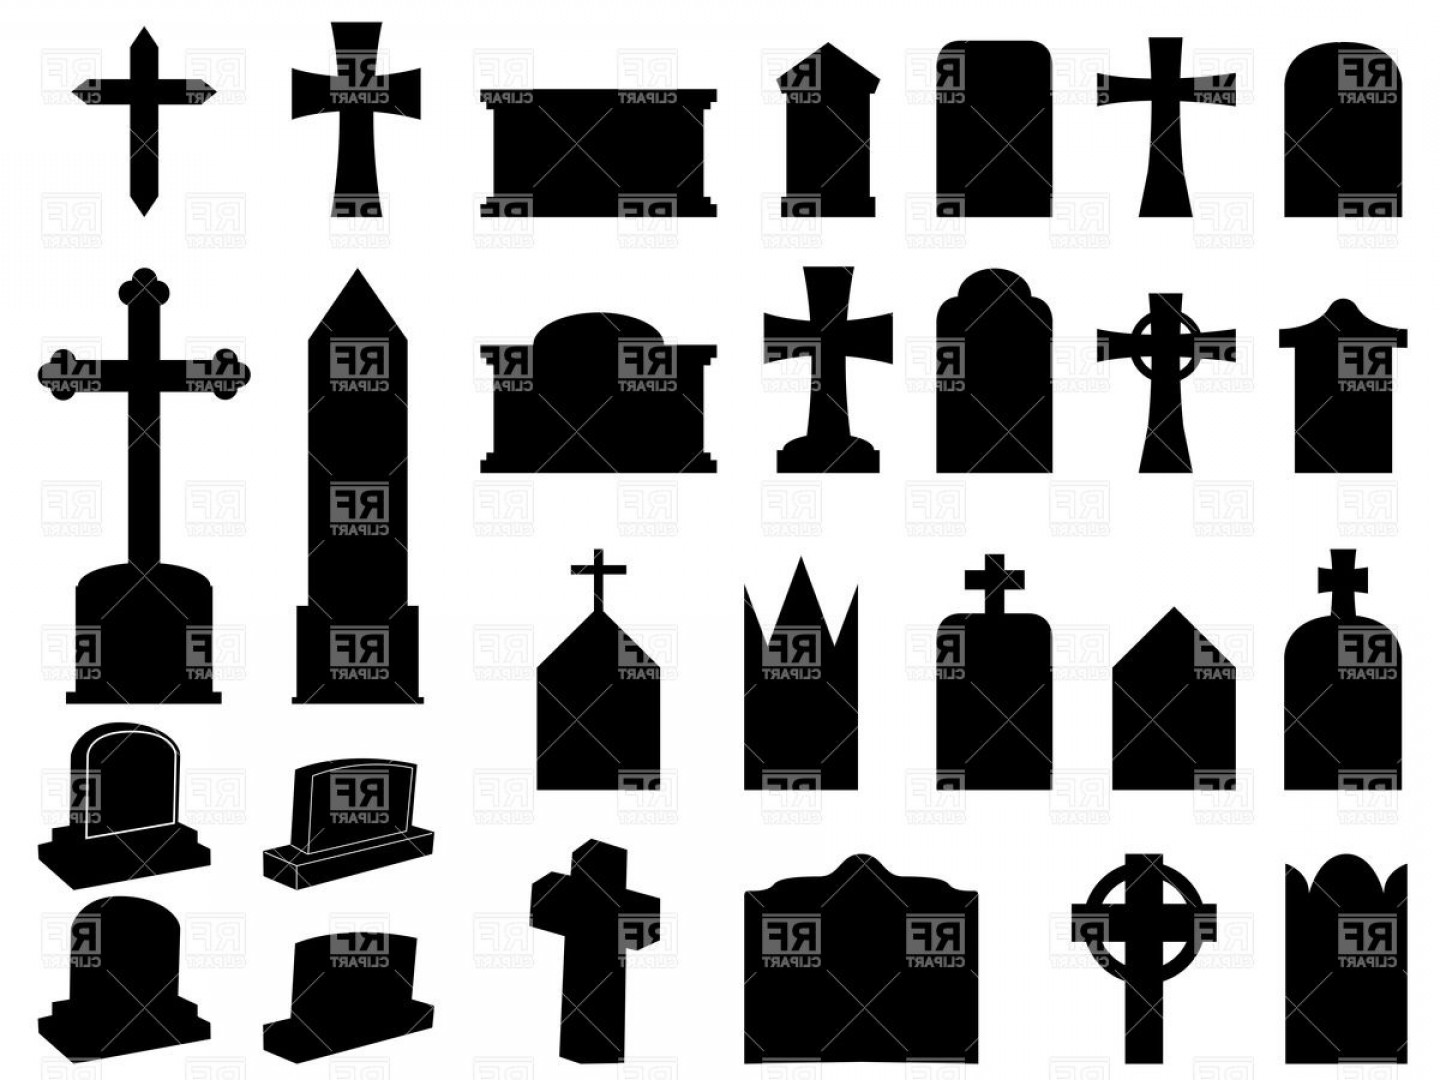 Gravestone Outline Vector: Silhouettes Of Funerary Gravestones Tombstone And Crosses Vector Clipart